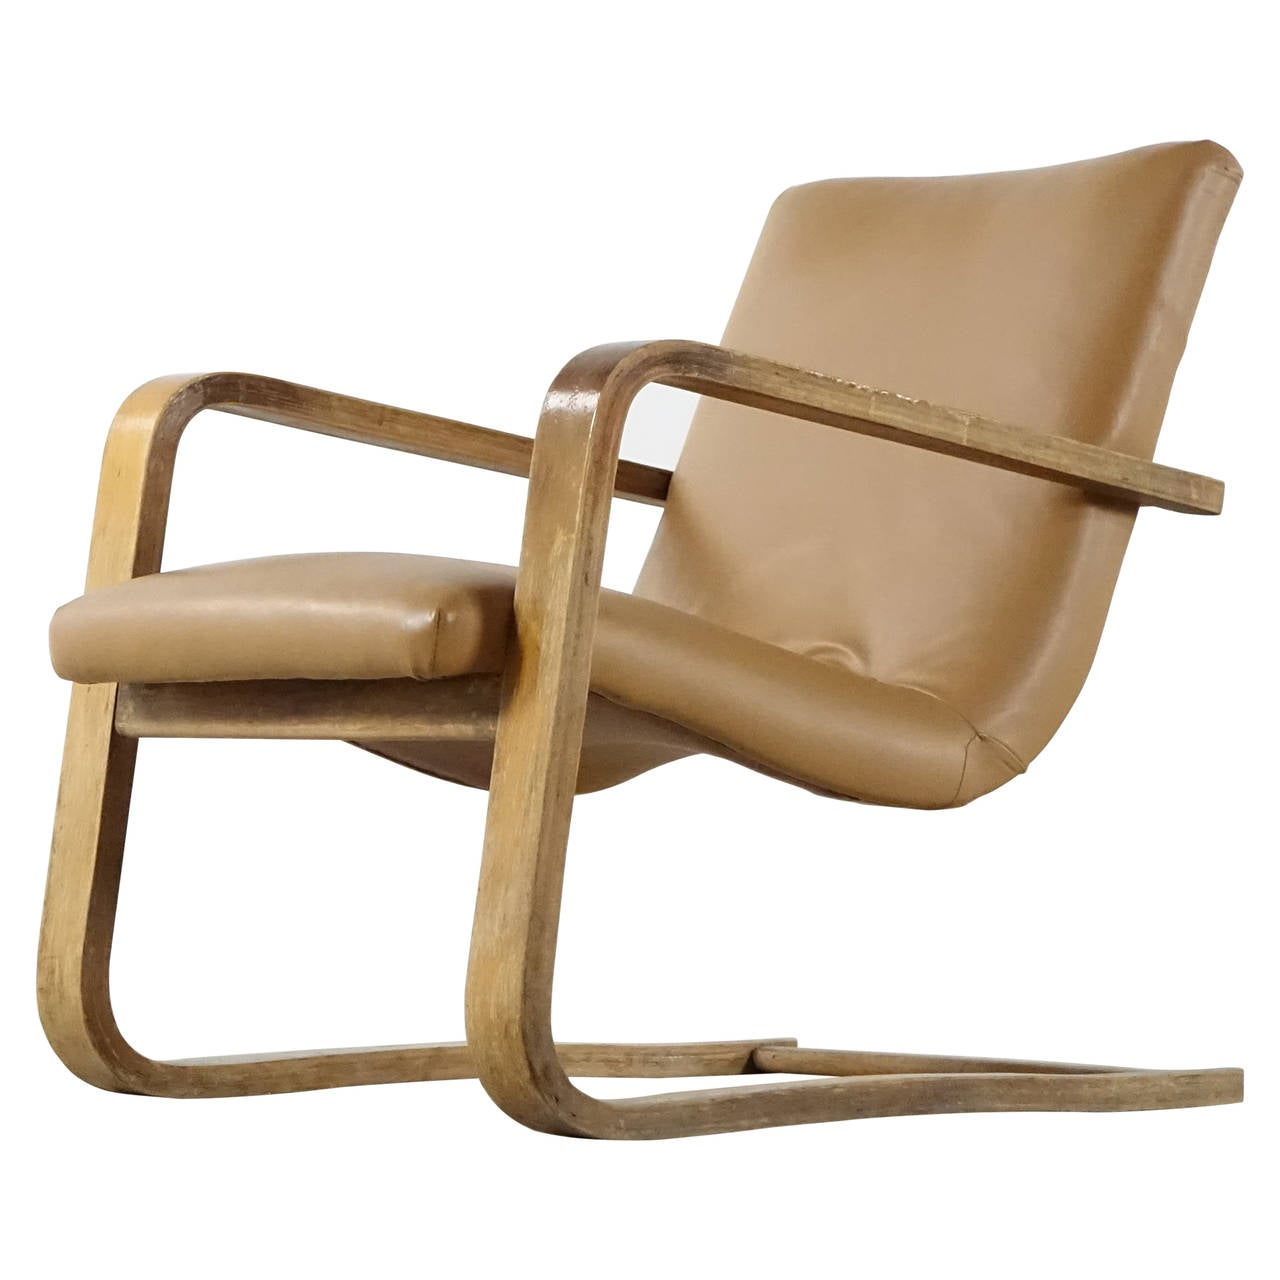 Alvar aalto style elm plywood and bentwood cantilever easy for Alvar aalto chaise